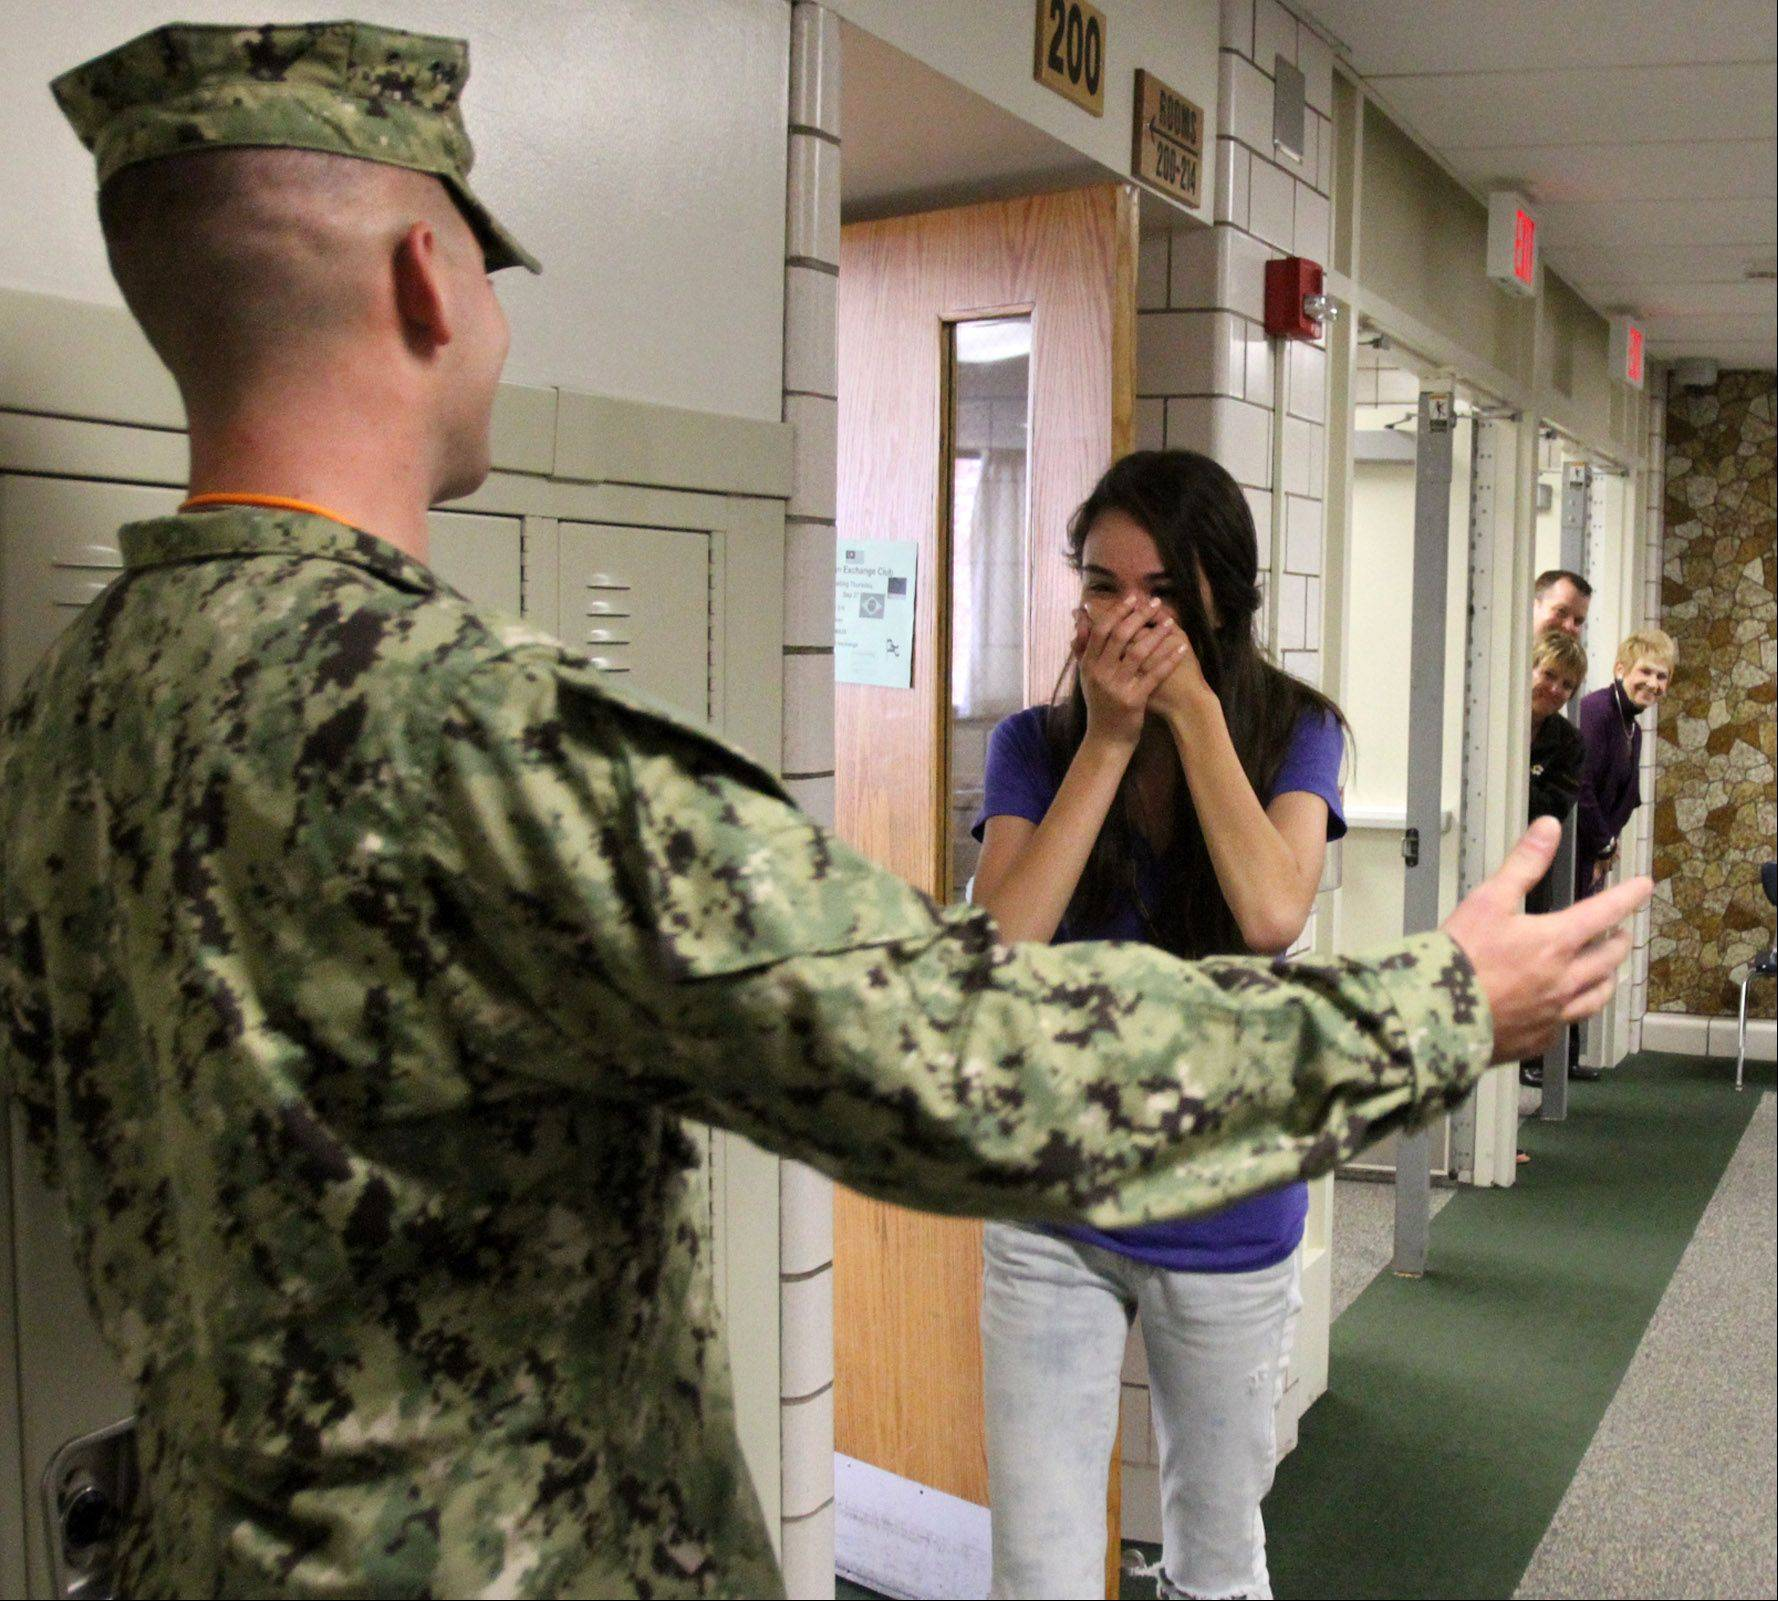 Petty Officer 3rd Class Cameron Schwartz, U.S. Navy, surprised his younger sister Jacqueline Trujillio, a freshman at Fremd High School by showing up at the school in Palatine just after surprising his younger brother at Hunting Ridge School.